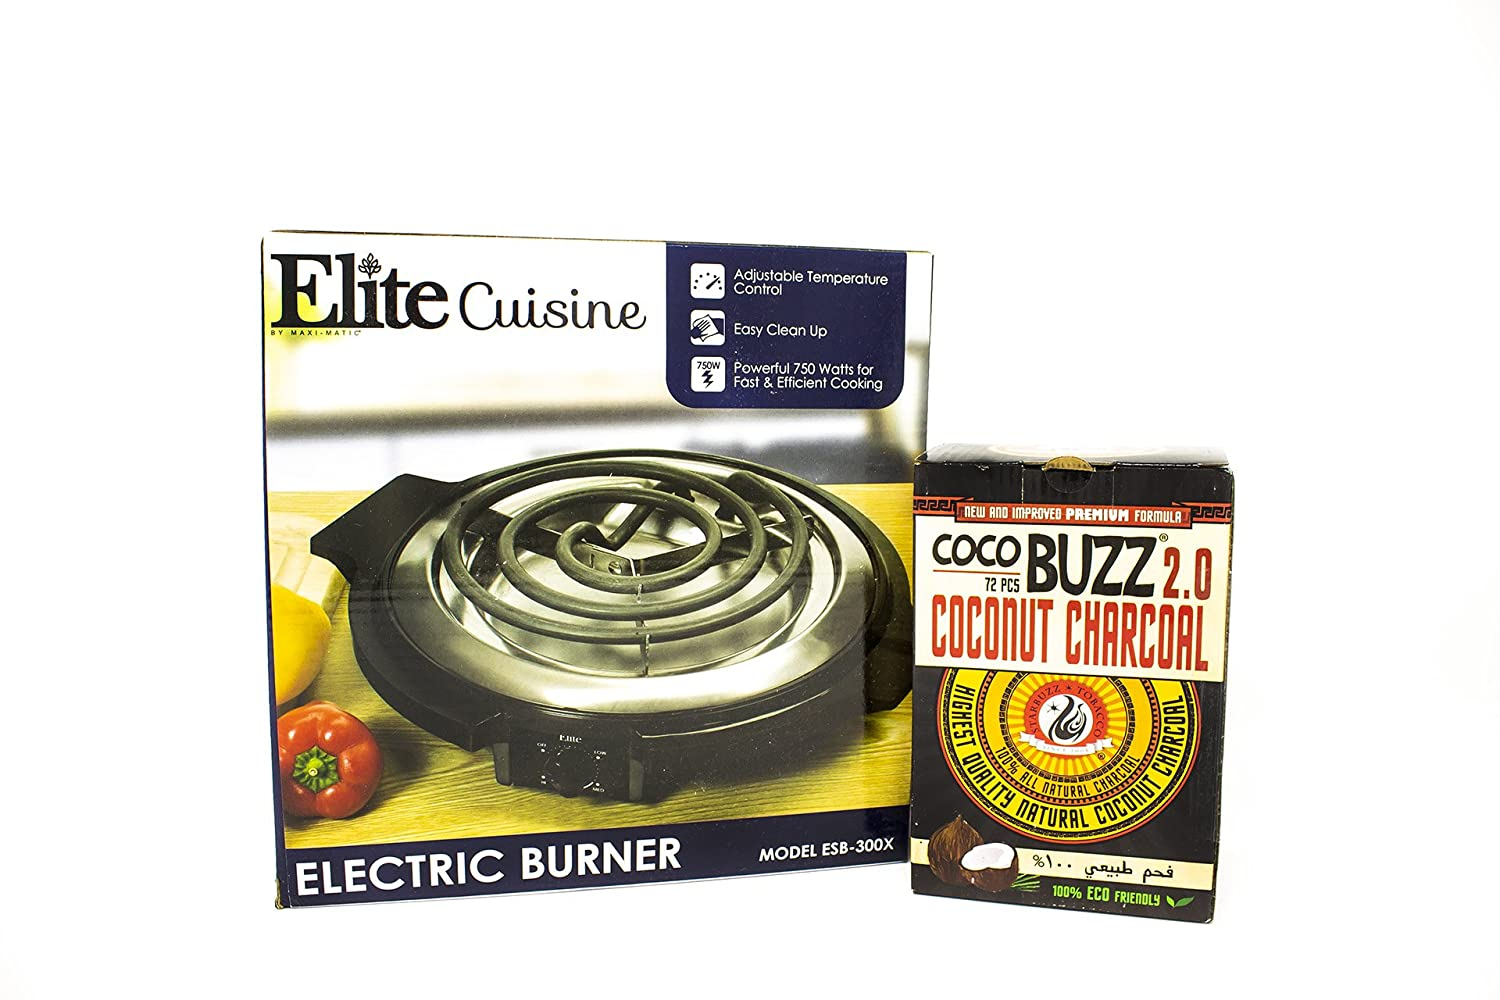 Amazon.com: Coco Buzz 2.0 Hookah Coals (72 Pieces) + Elite Cuisine ESB-300X Maxi-Matic 750 Watt Single Burner Electric Hot Plate, Black by PrimeDeals: ...